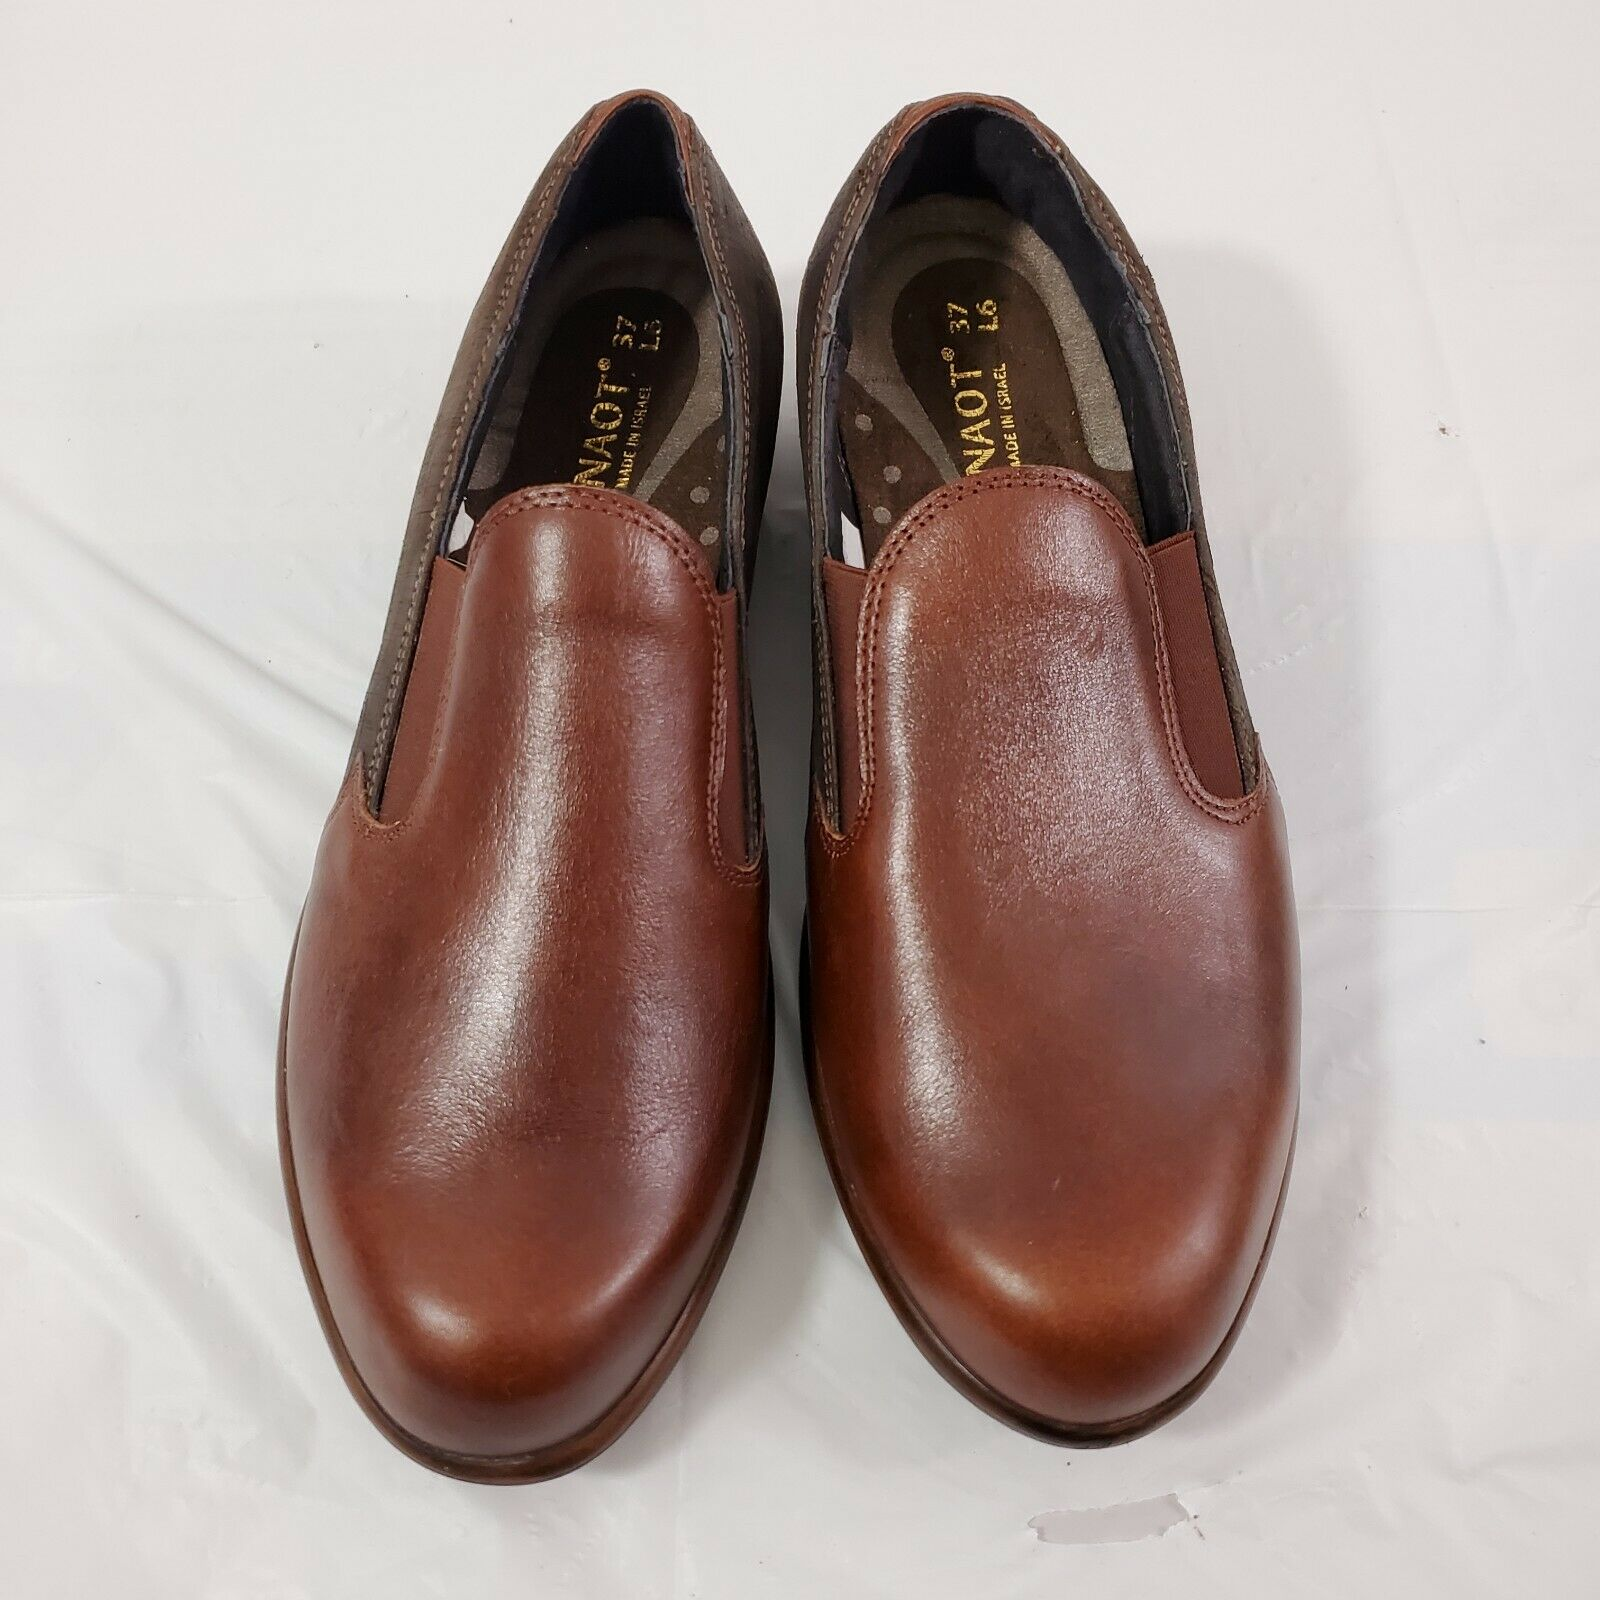 Naot Women's Leather Ostro Brown Two Tone Slip-On Loafters 37 US Size 6 -